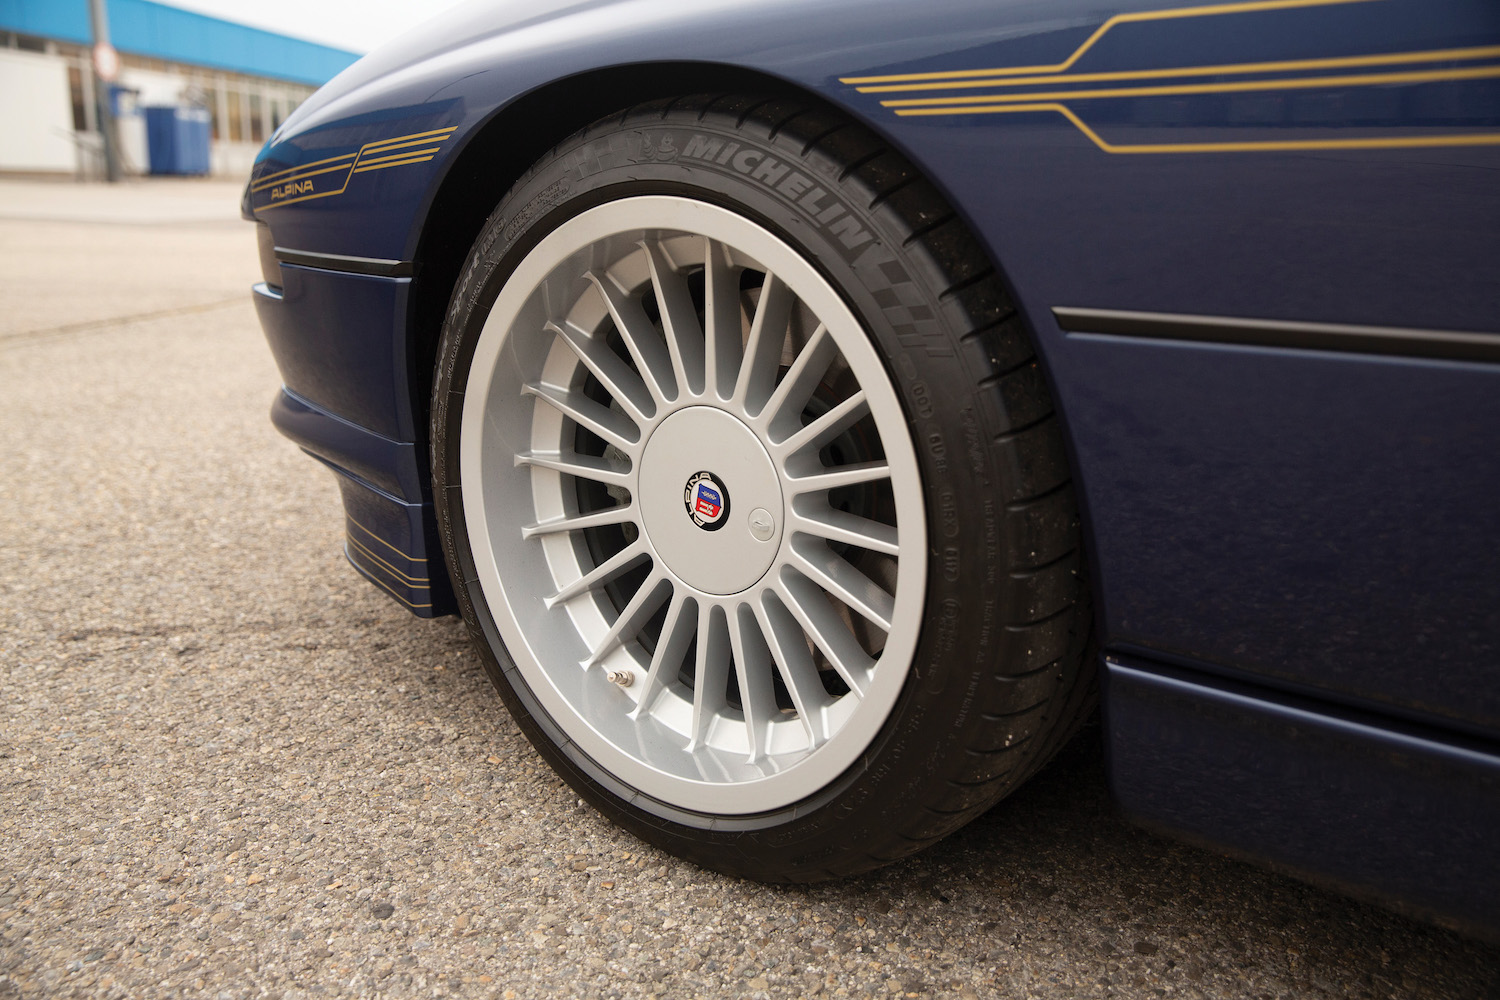 1993 BMW Alpina B12 5.7 Coupe front wheel